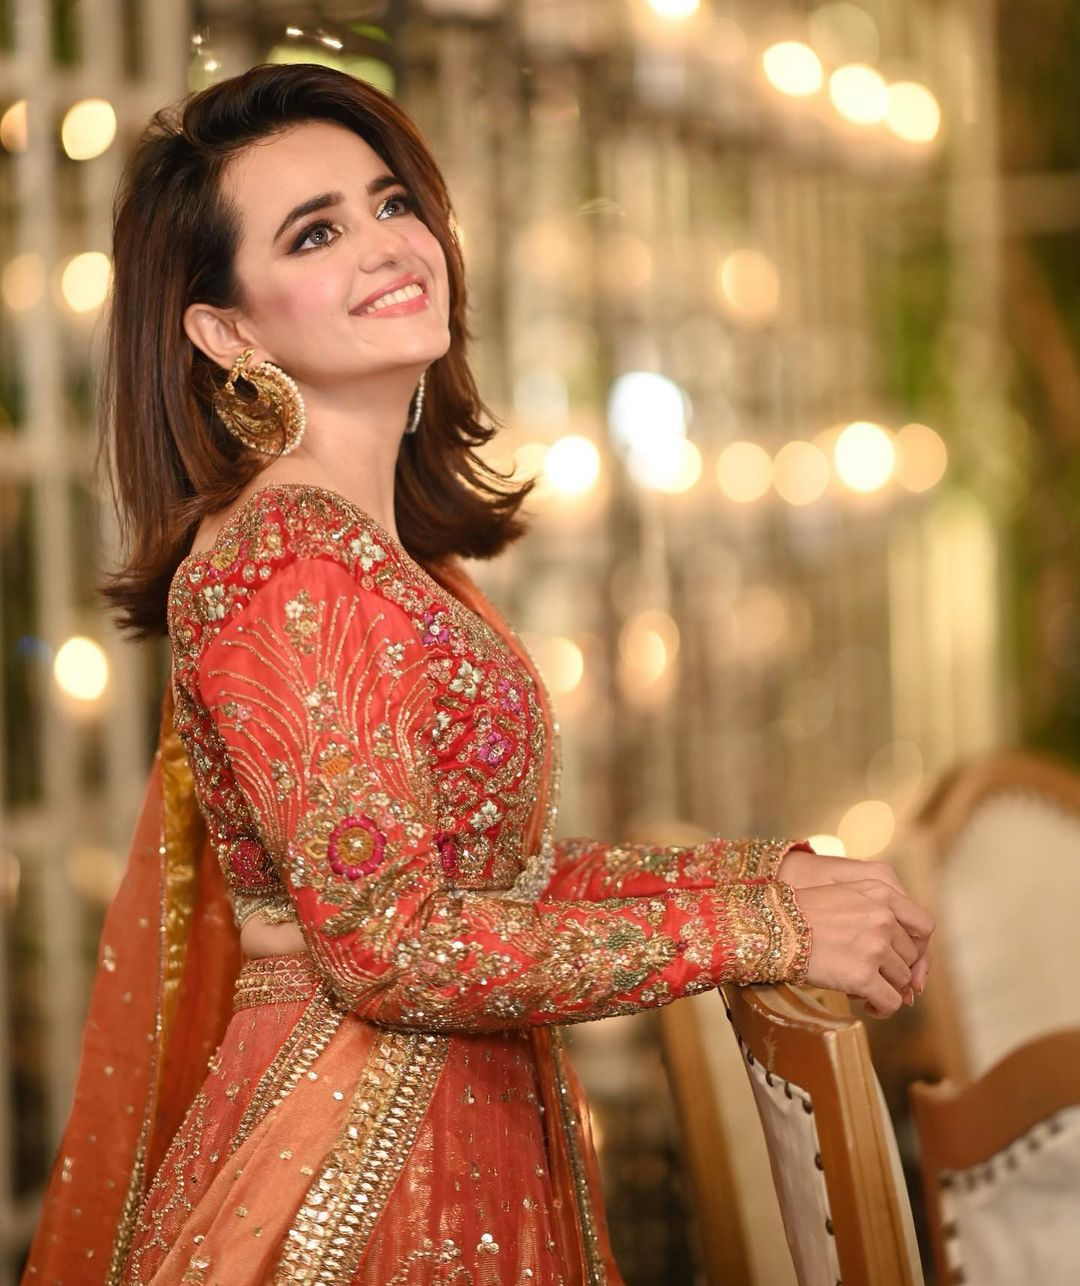 Sumbul Iqbal Looking Stunning in her Latest Pictures